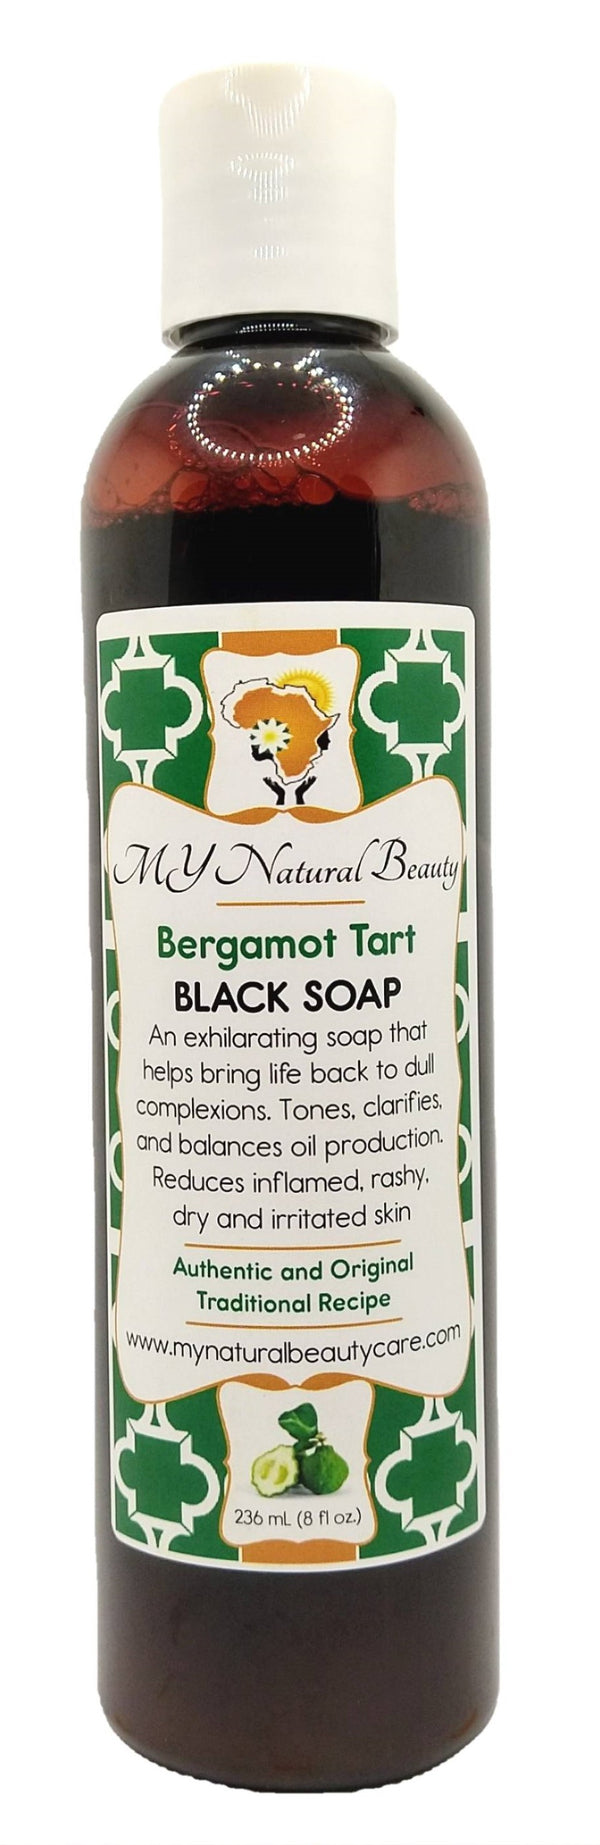 Buy REAL (NATURAL) BLACK SOAP from AFRICA (with BERGAMOT) An exhilarating burst of tarty sweet bergamot, lemongrass, and lime. MY Natural Beauty Products are made by traditional hand blending from all natural ingredients and healing herbs. BODY & SKIN CARE - Buy Liquid Black Soap Online So Florida, Miami, Lauderdale